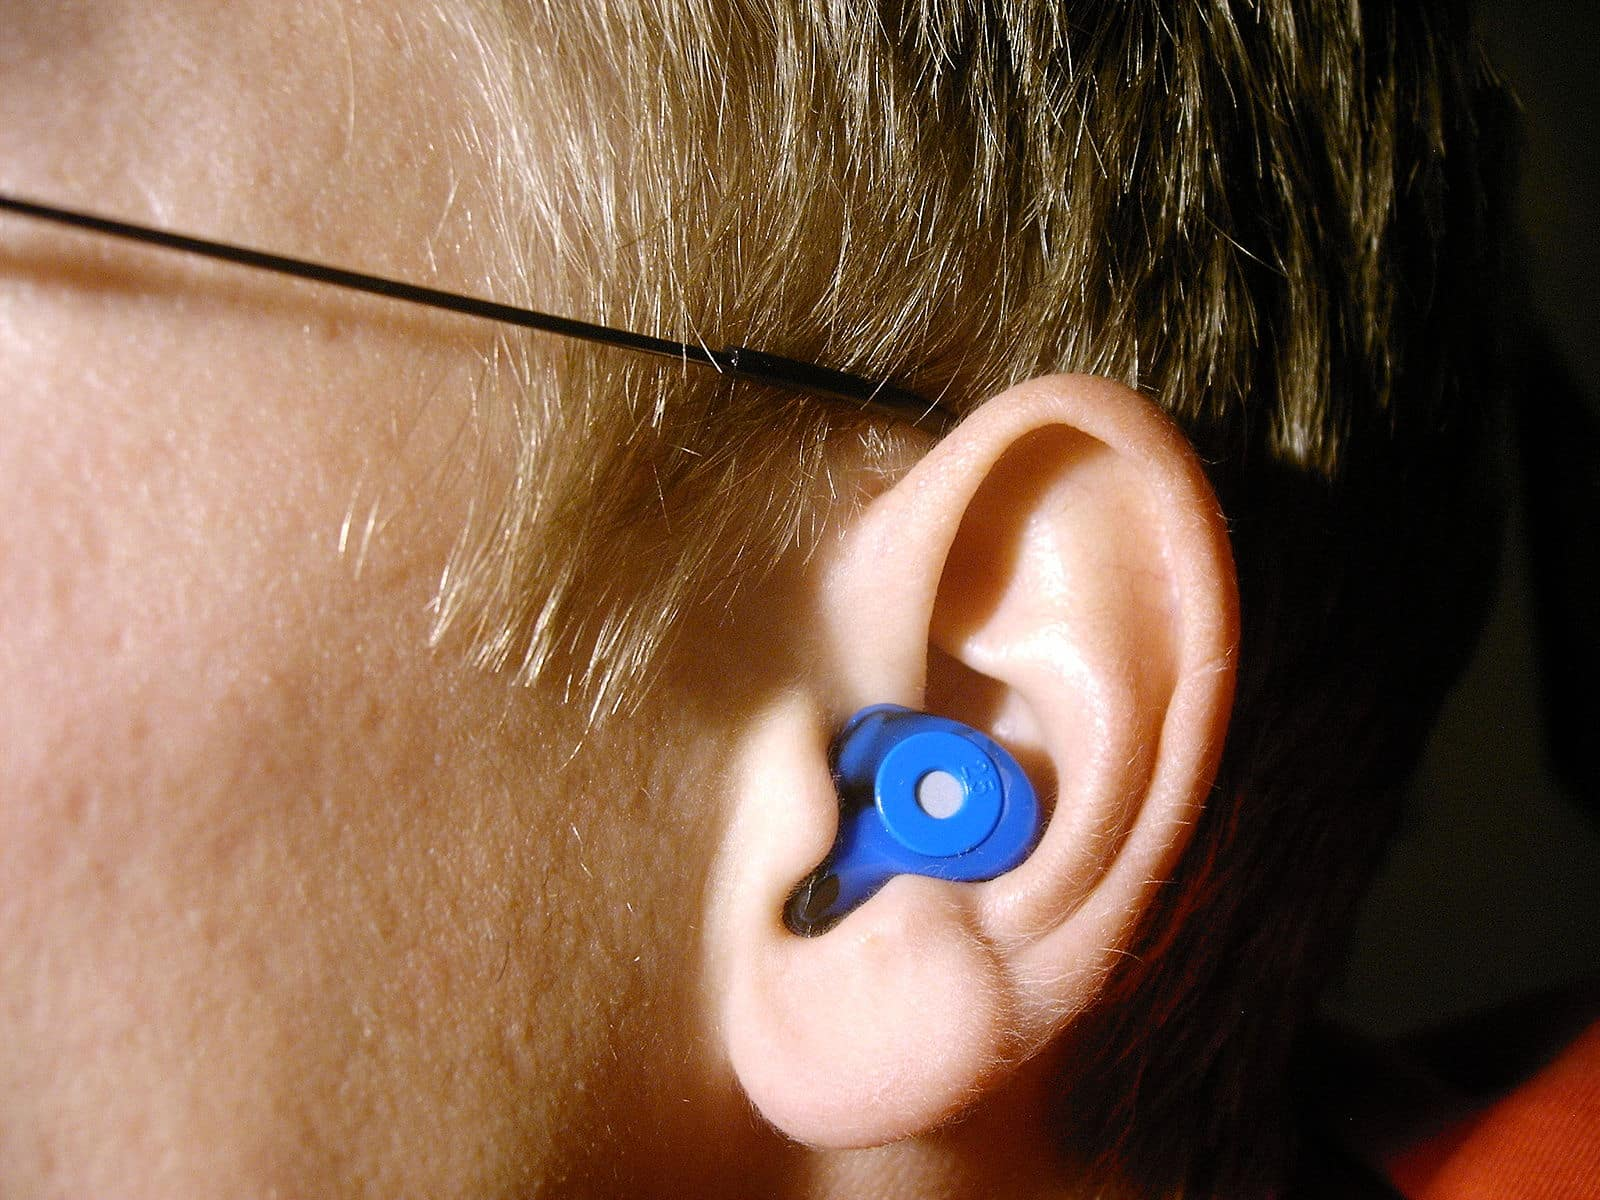 Are wireless earbuds worth it